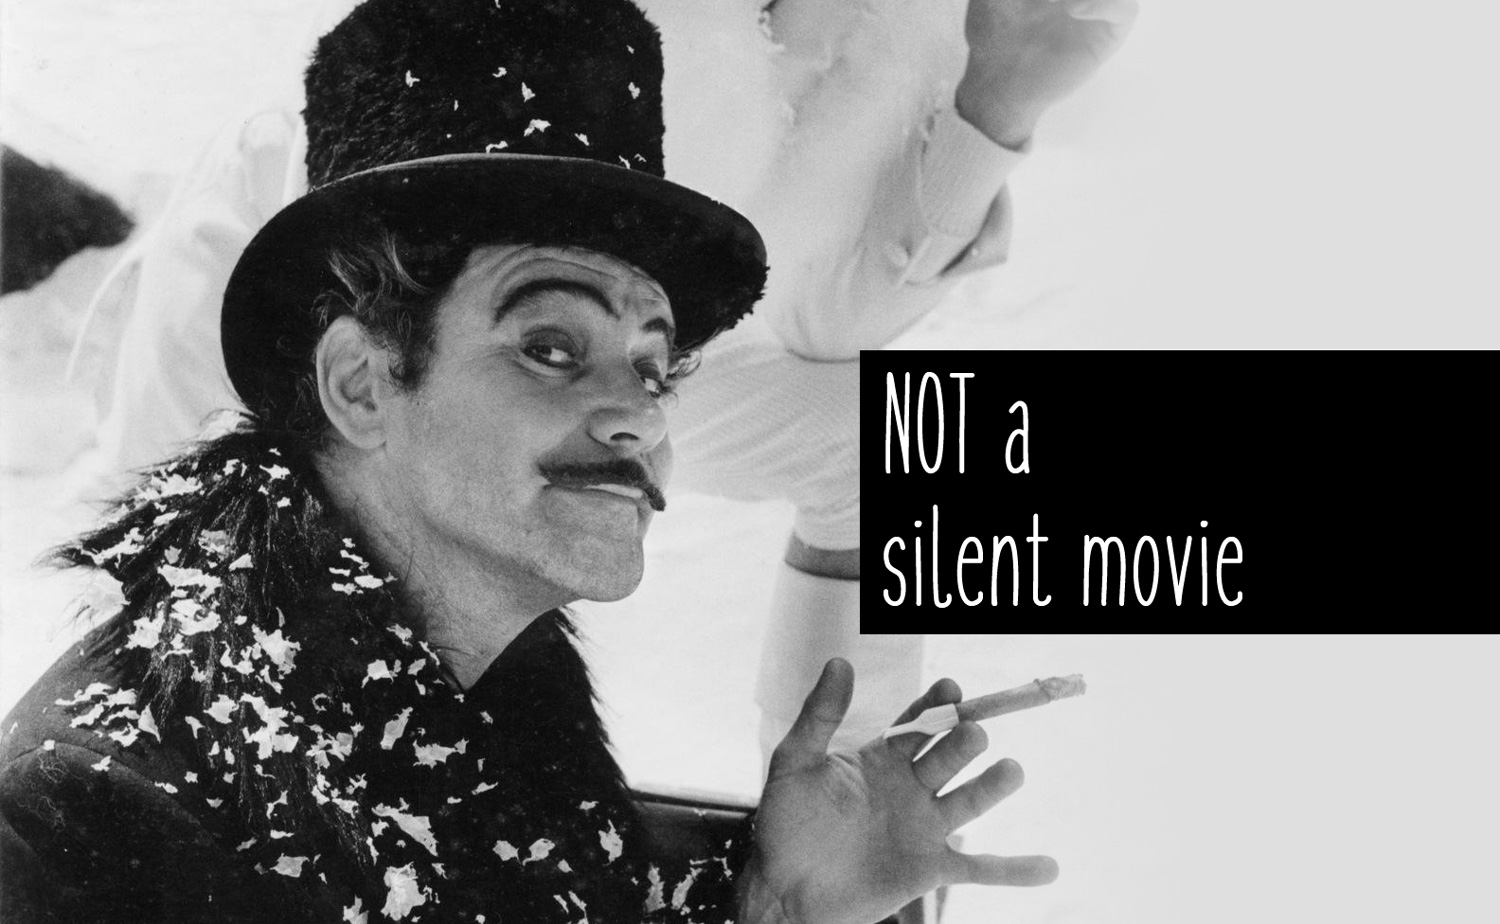 Silent Movie Myth Everything You Know About Silent Film Villains Is Wrong Movies Silently